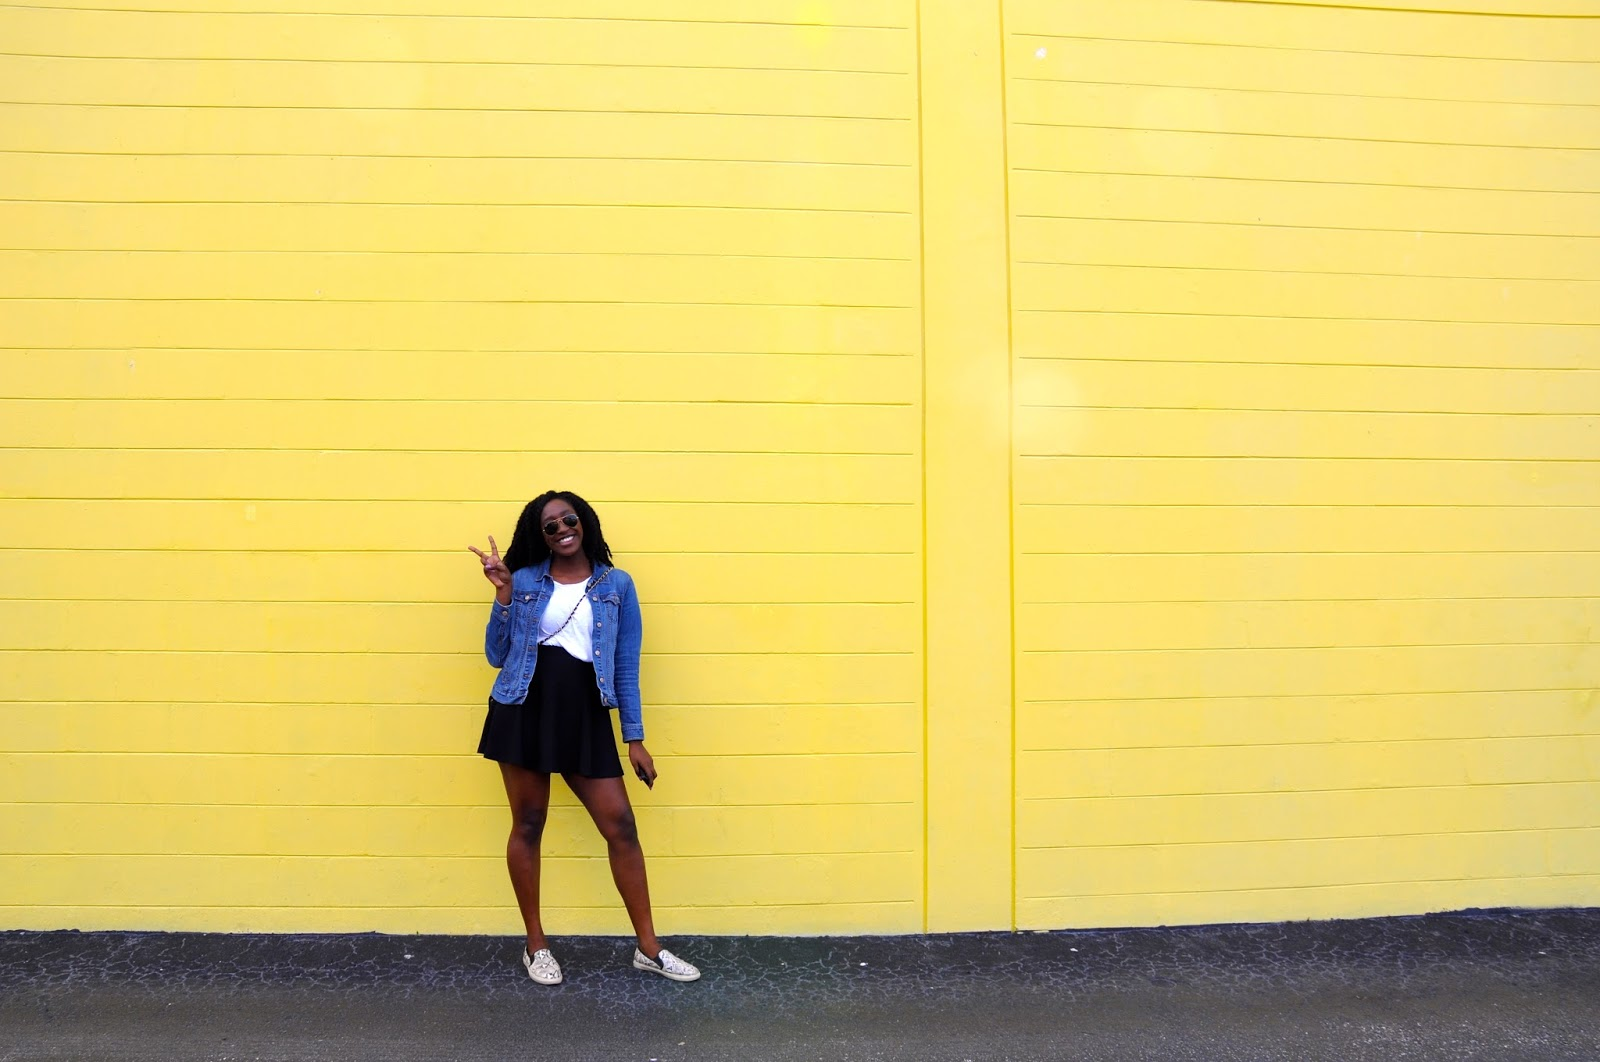 Colorful Walls = Perfect Background | marveling-mind